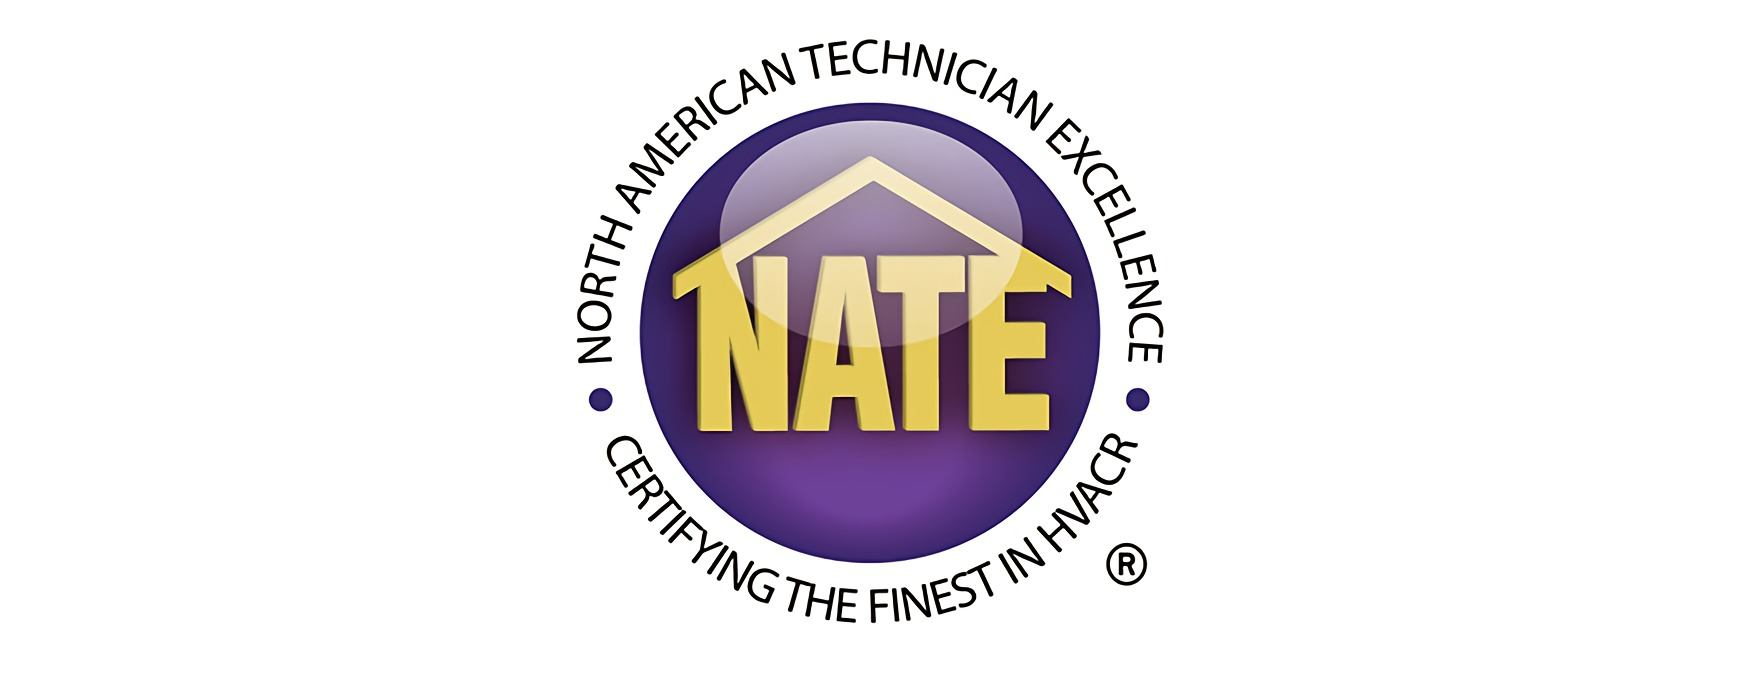 nate certification for hvac